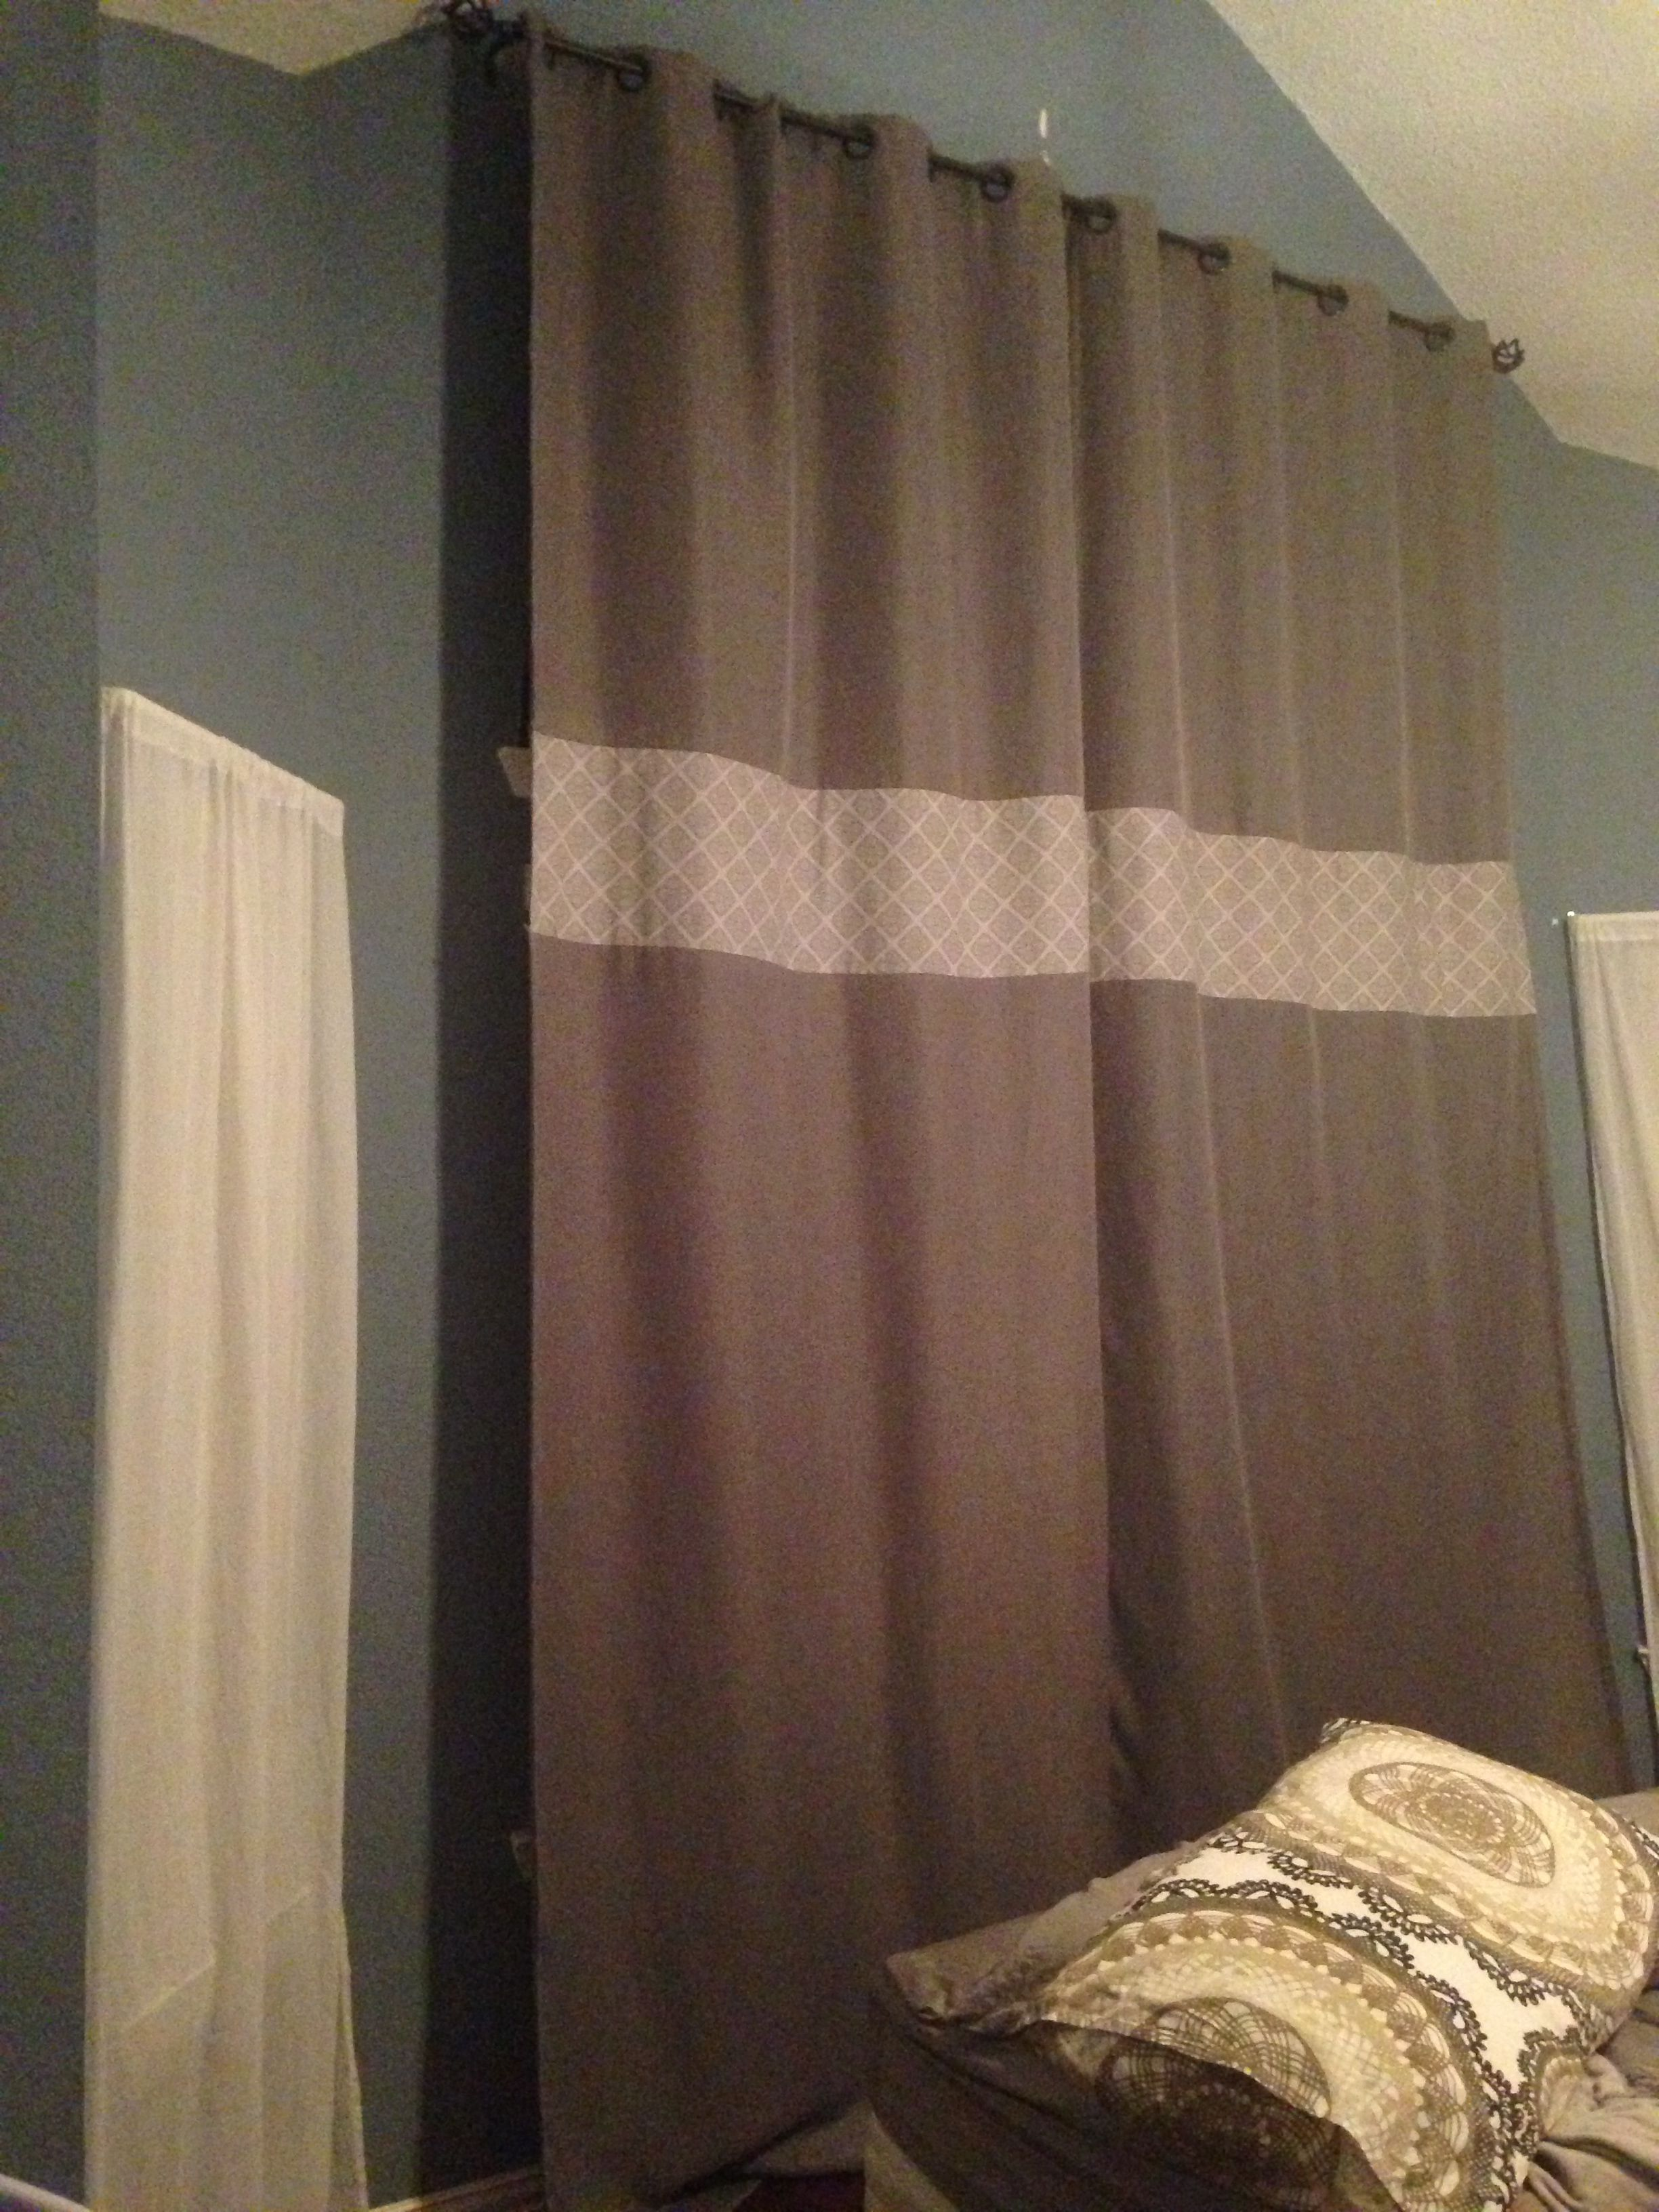 Making My Own 130 Inch Curtains And Covering That Awful Half Circle Window Used Eclipse Sun Blocking Curtains And Qui Custom Window Treatments Home Decor Home